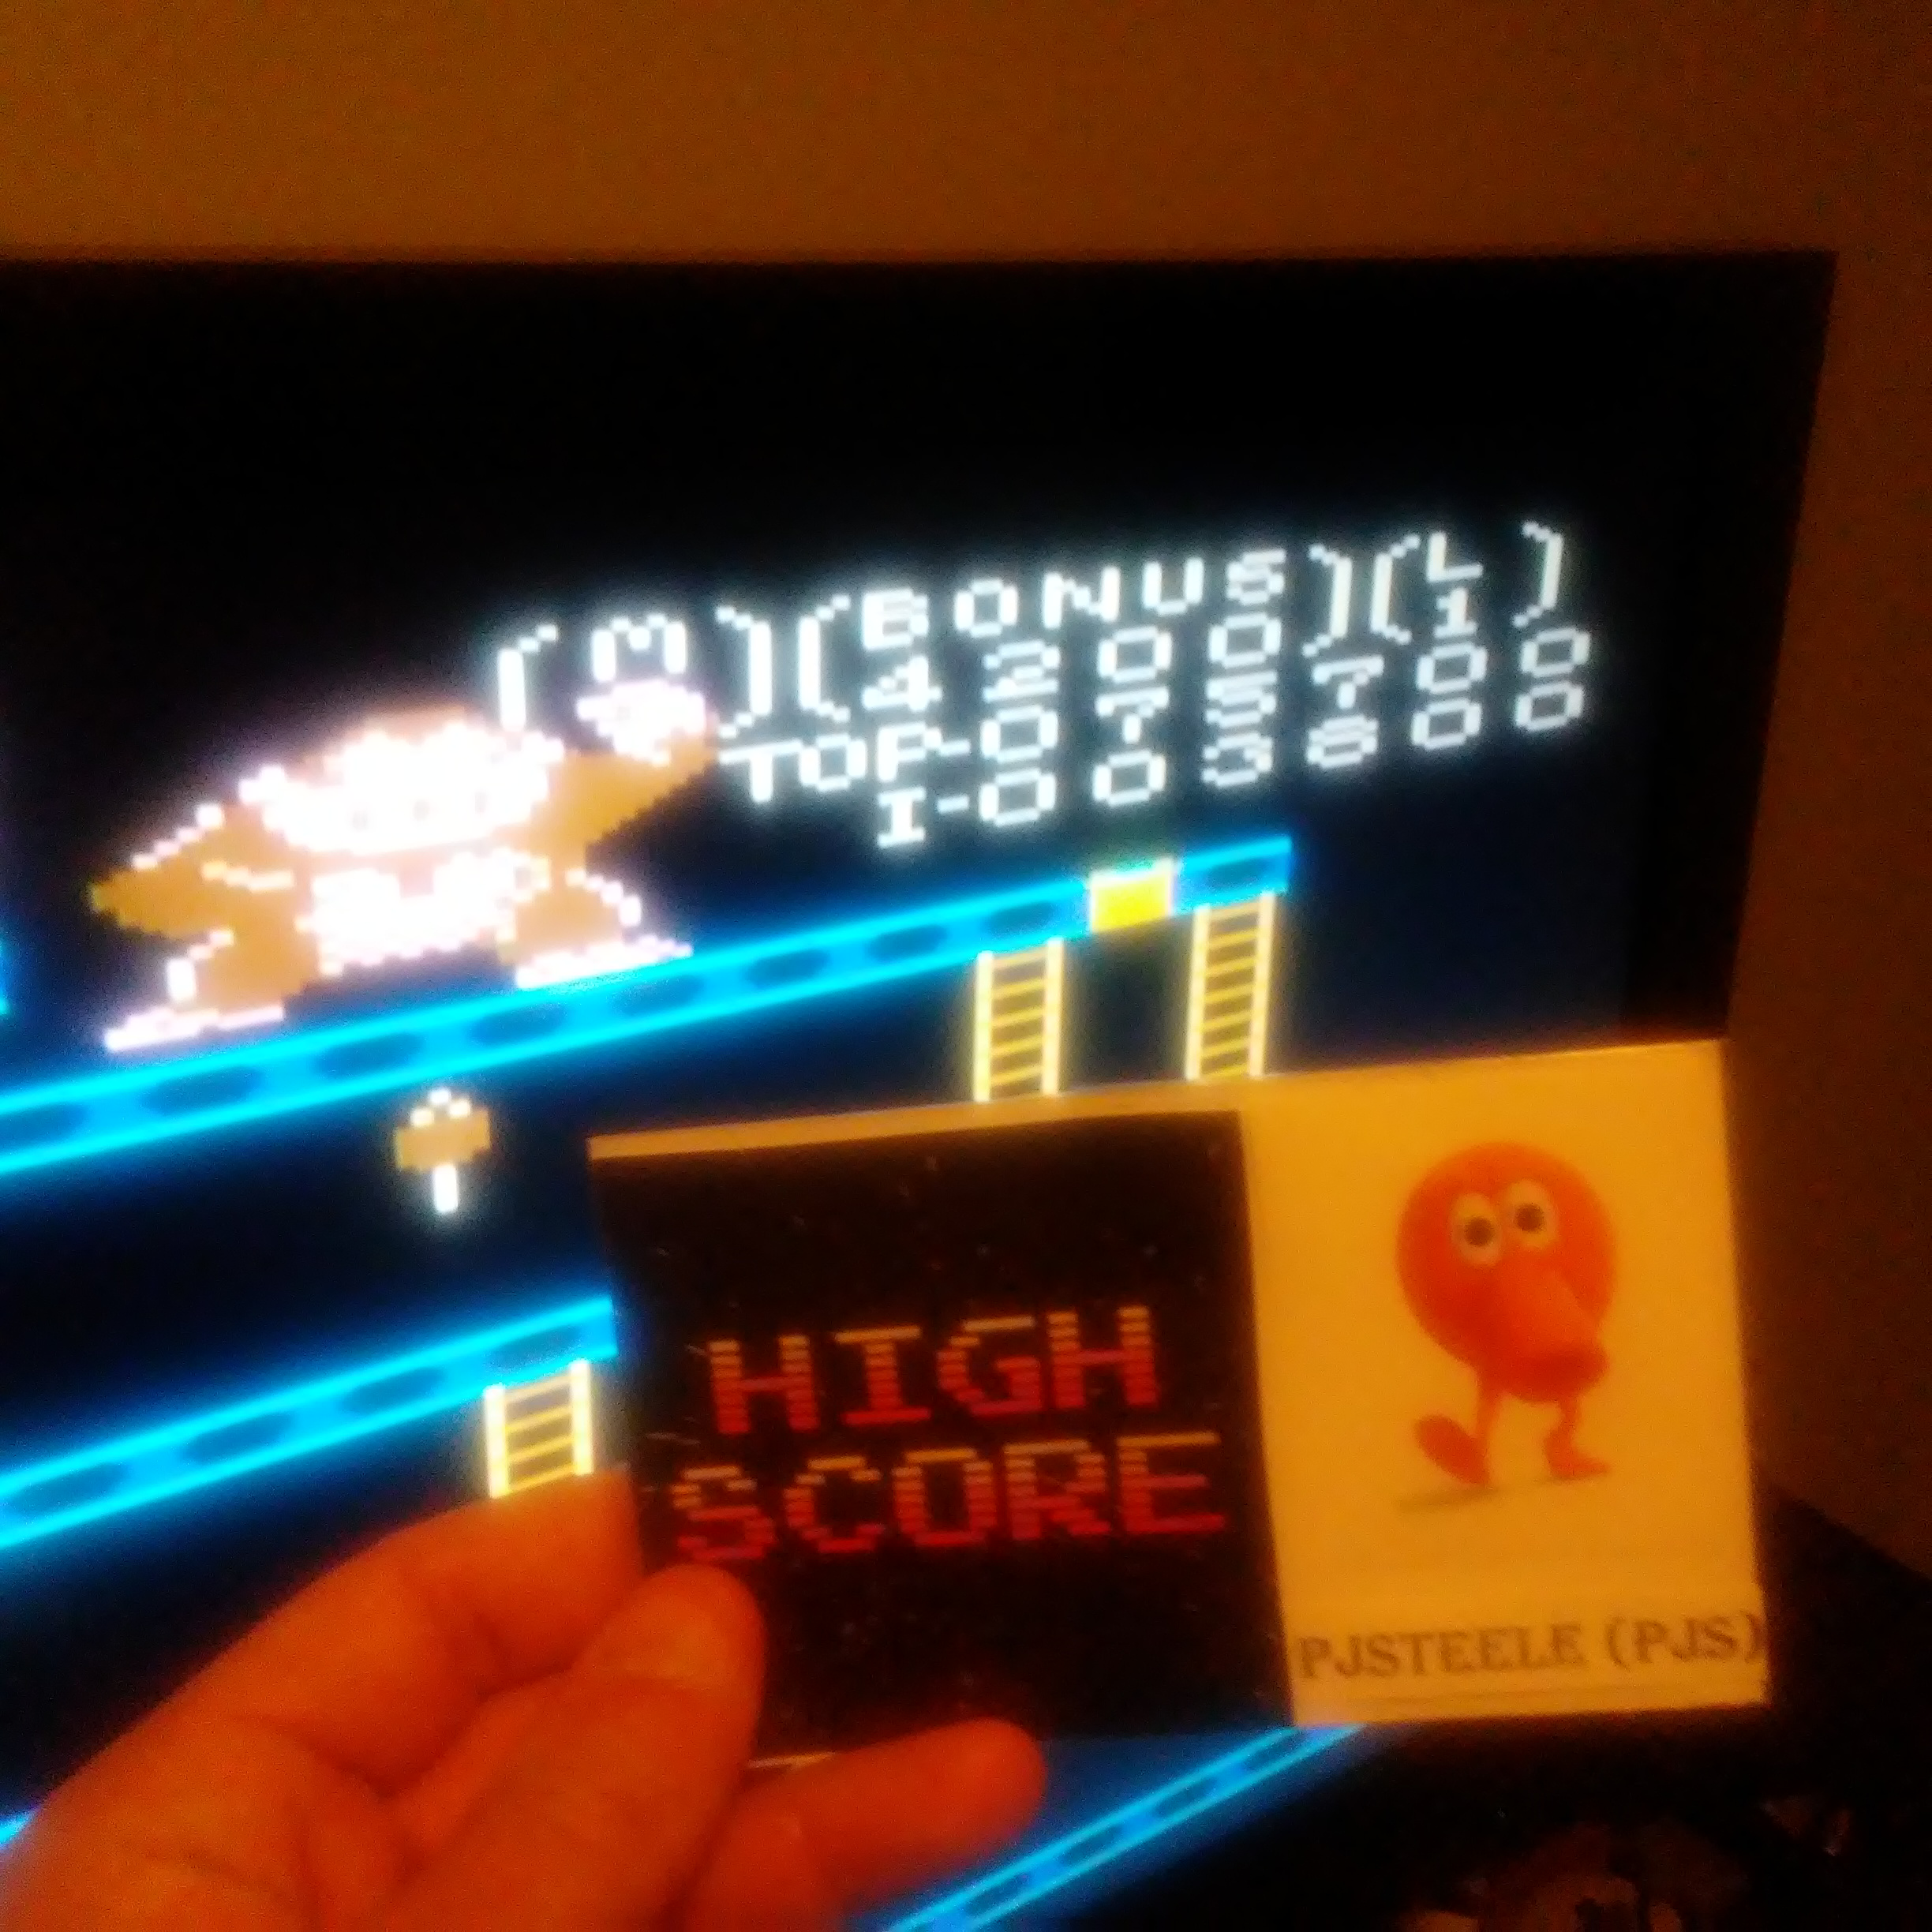 Pjsteele: Donkey Kong: Expert (Atari 7800 Emulated) 75,700 points on 2017-04-22 09:15:22